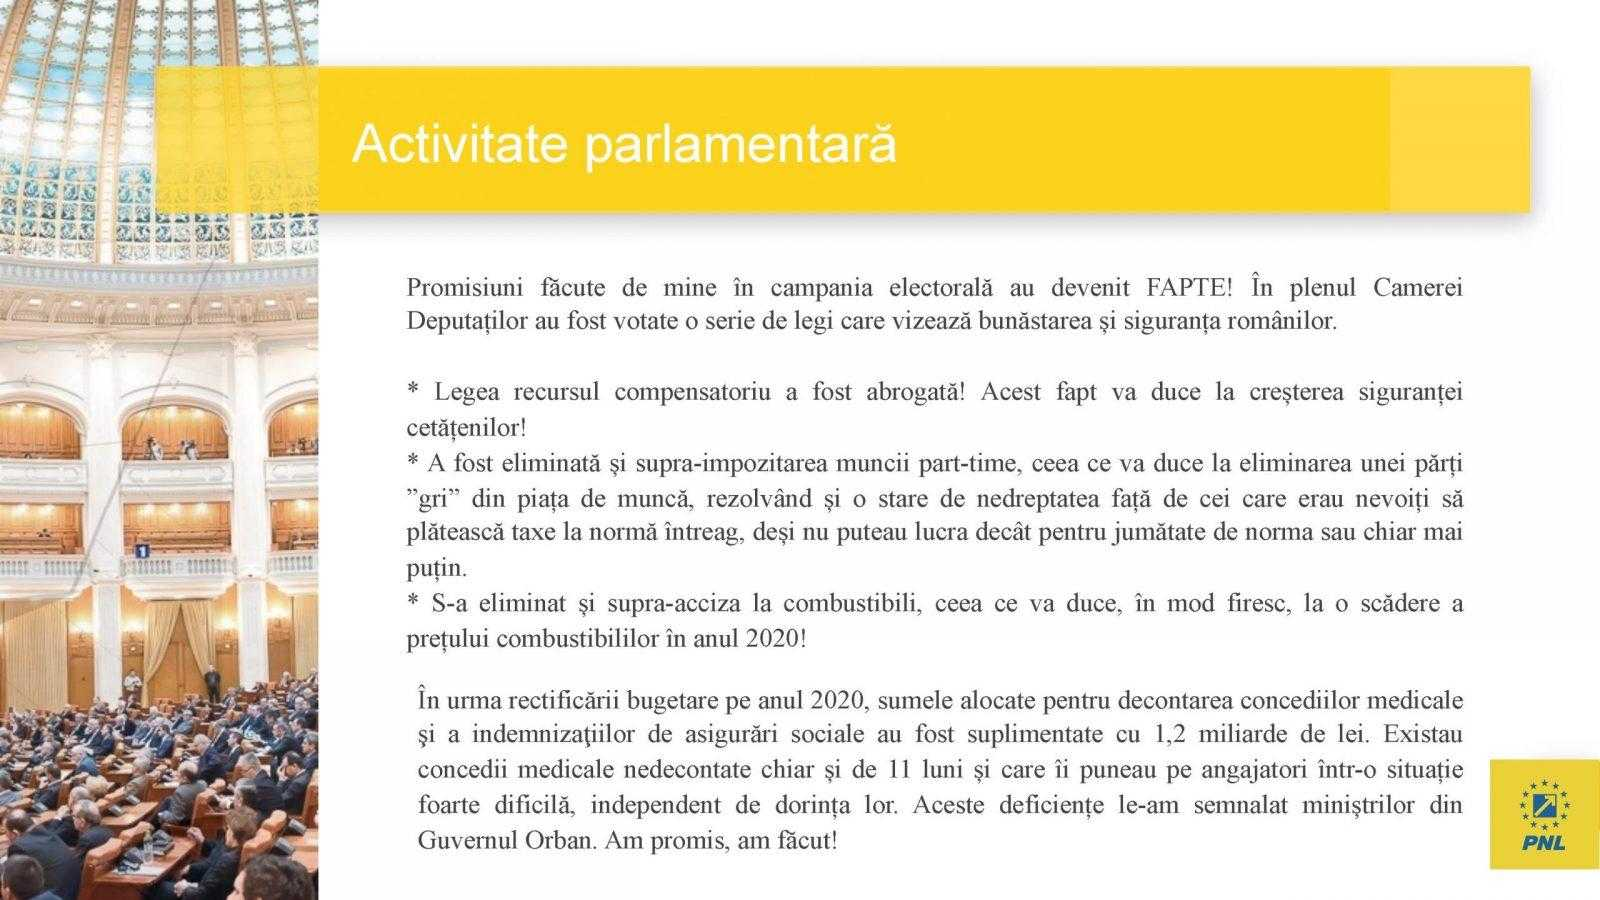 raport de activitate laurentiu leoreanu Page 08 scaled